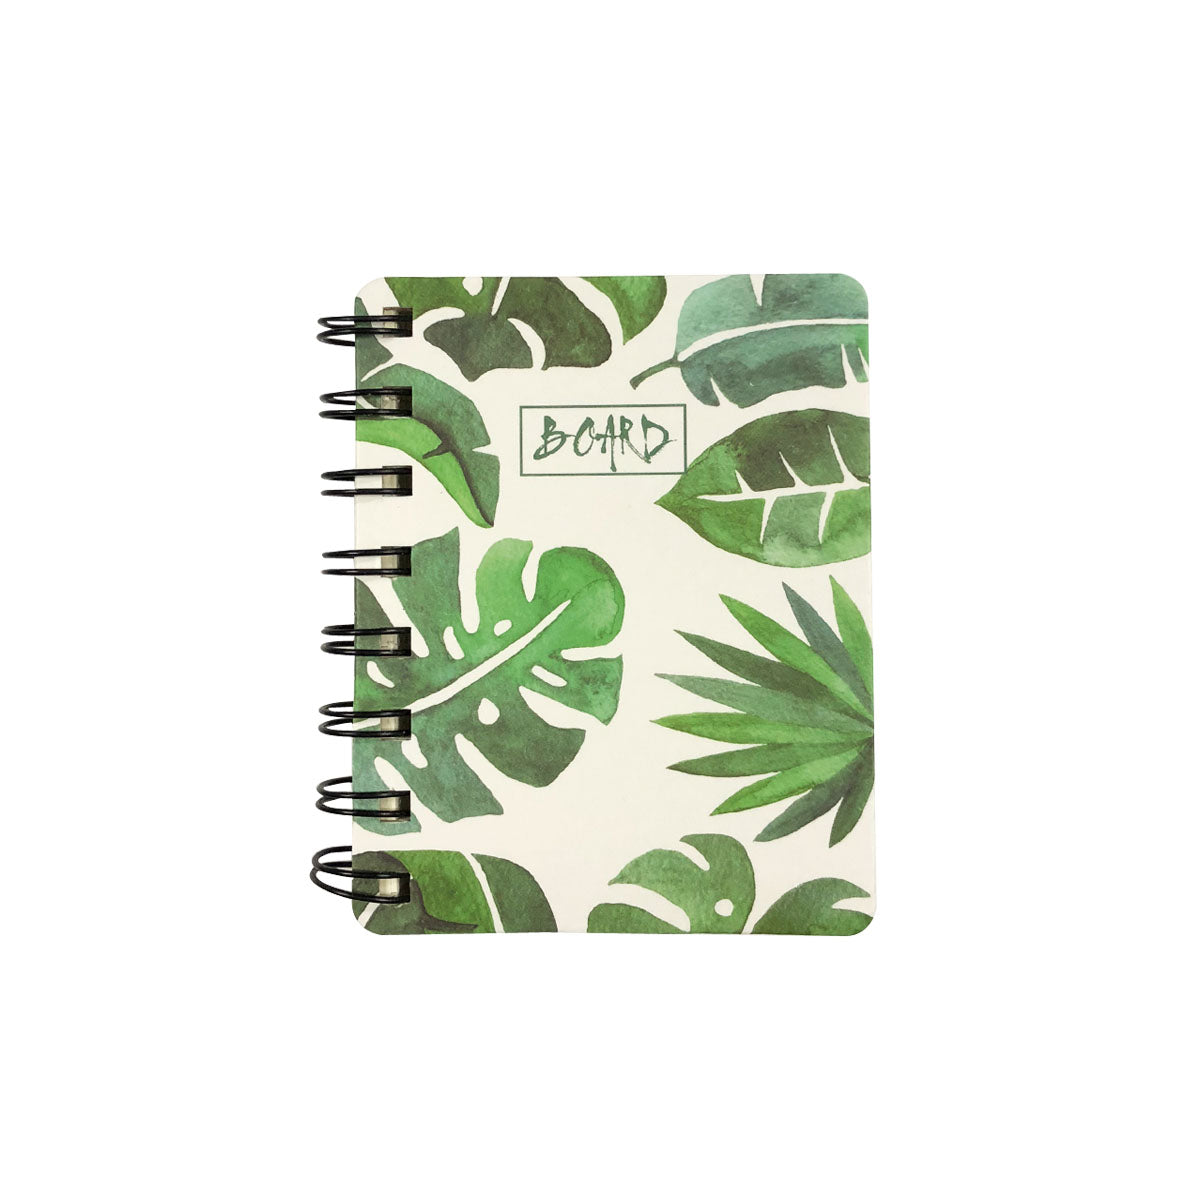 Wrapables® Novelty Spiral Notebooks Journals Stationery (Set of 4)